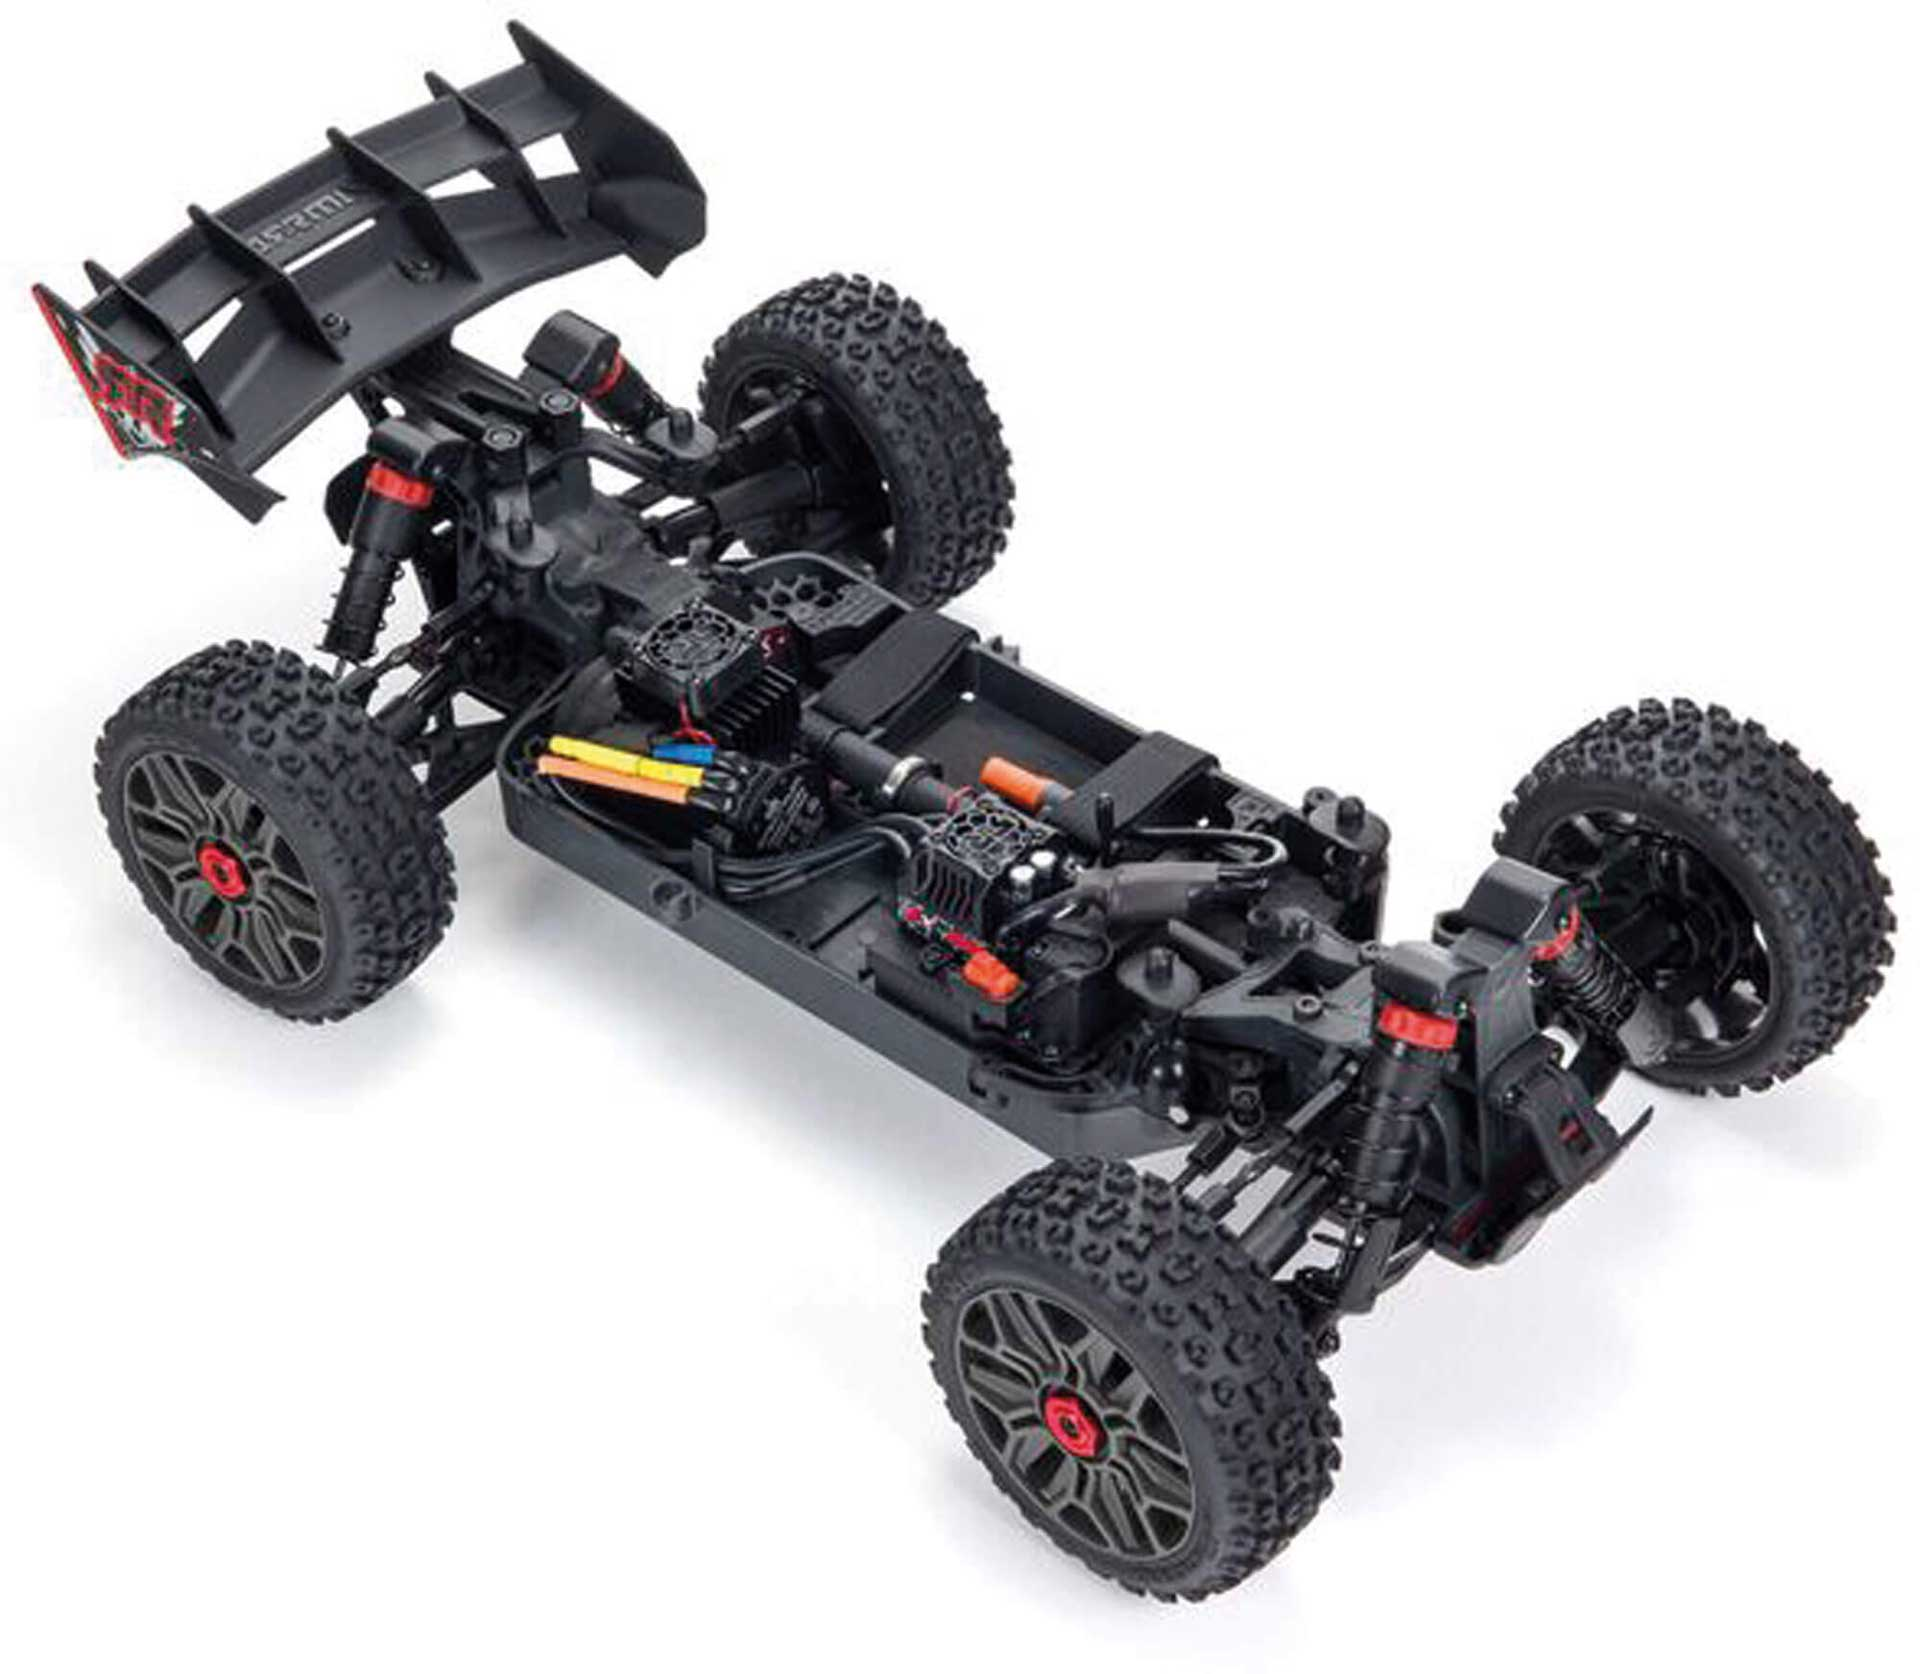 ARRMA TYPHON 4X4 3S BLX Brushless 1/8th 4wd Buggy Red